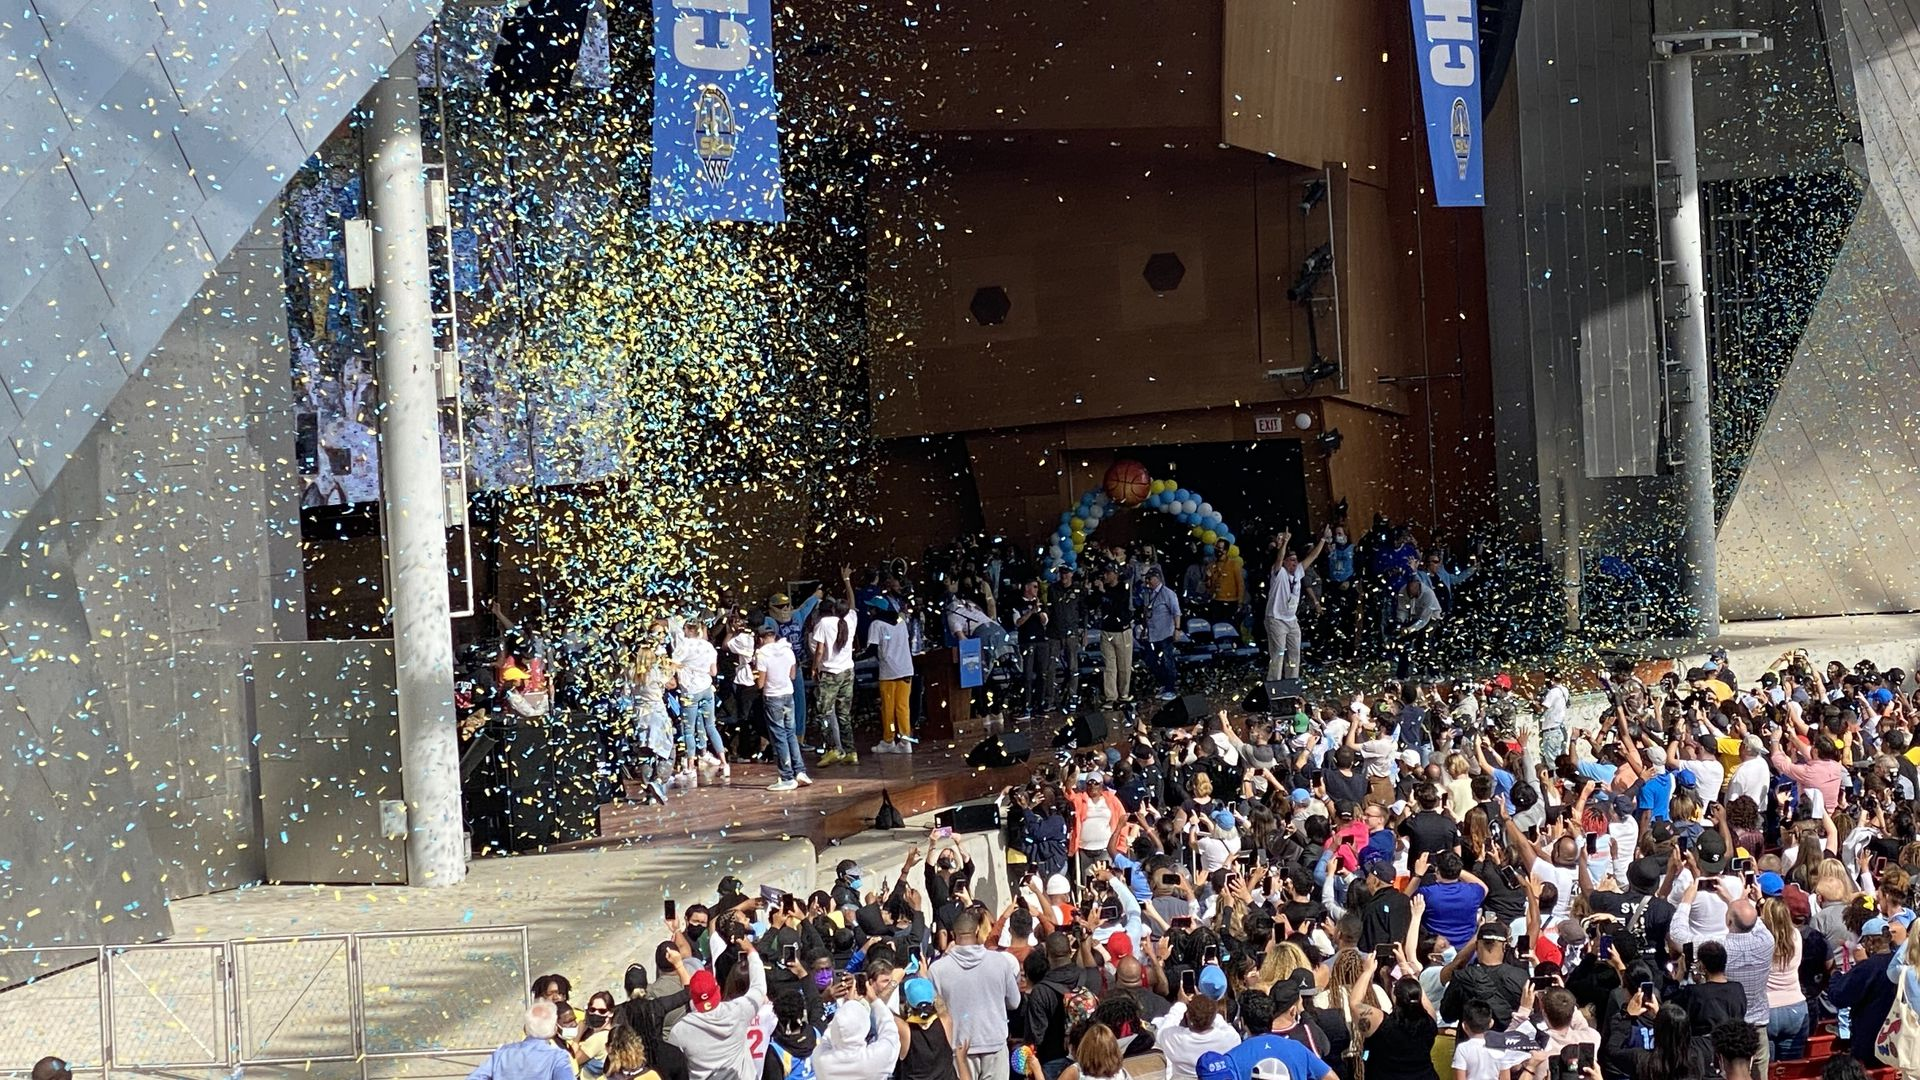 Confetti is dropped all over the stage at a championship rally.